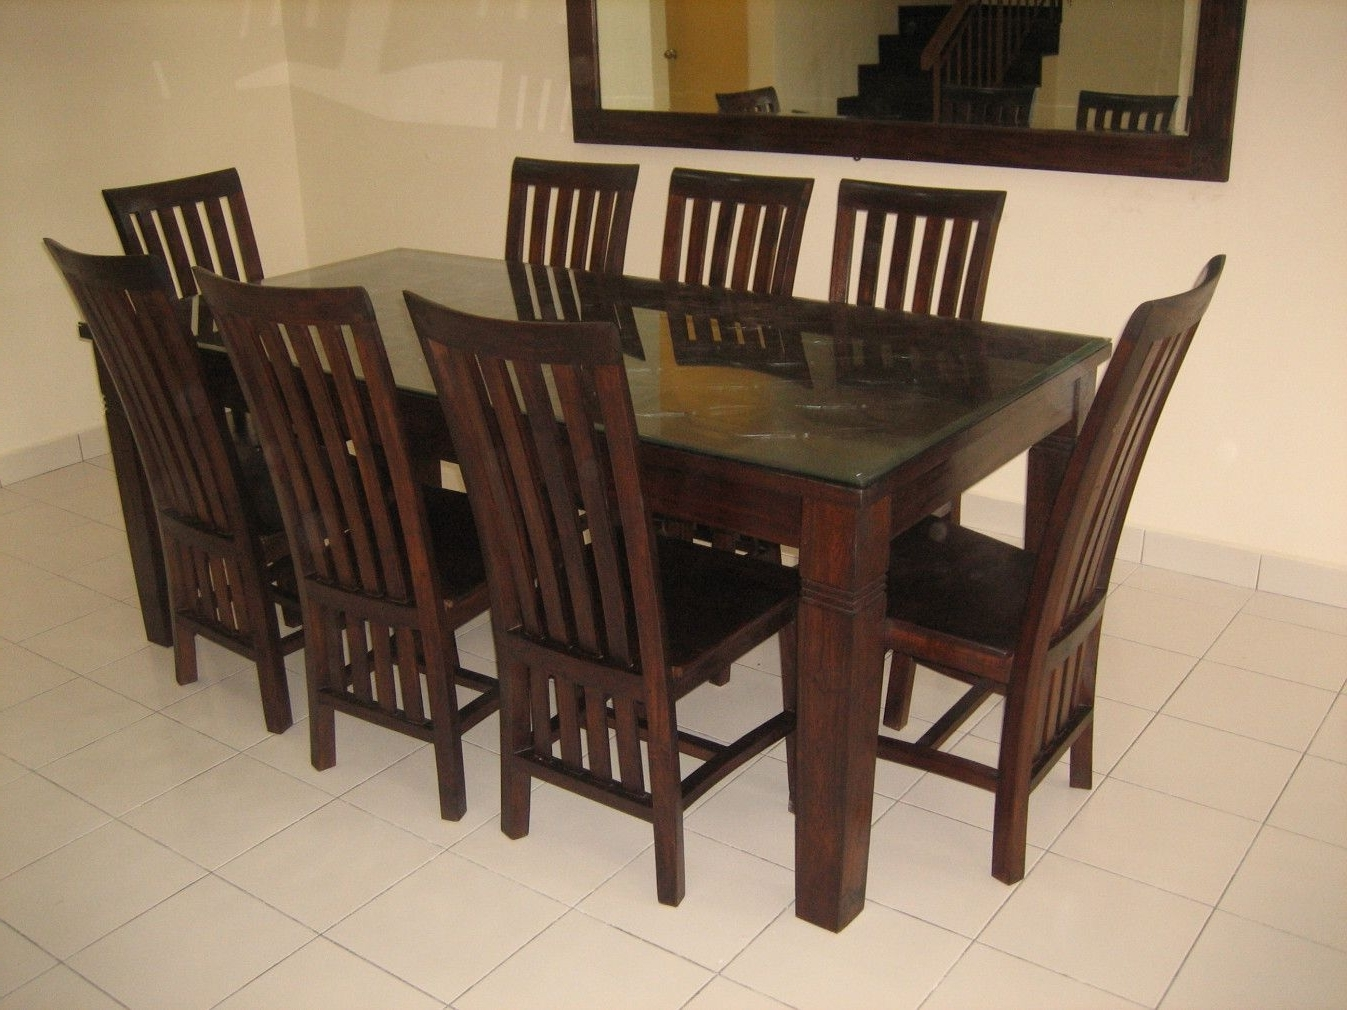 2017 Second Hand Oak Dining Chairs Regarding 55+ Second Hand Oak Dining Table And Chairs – Vintage Modern (View 16 of 25)